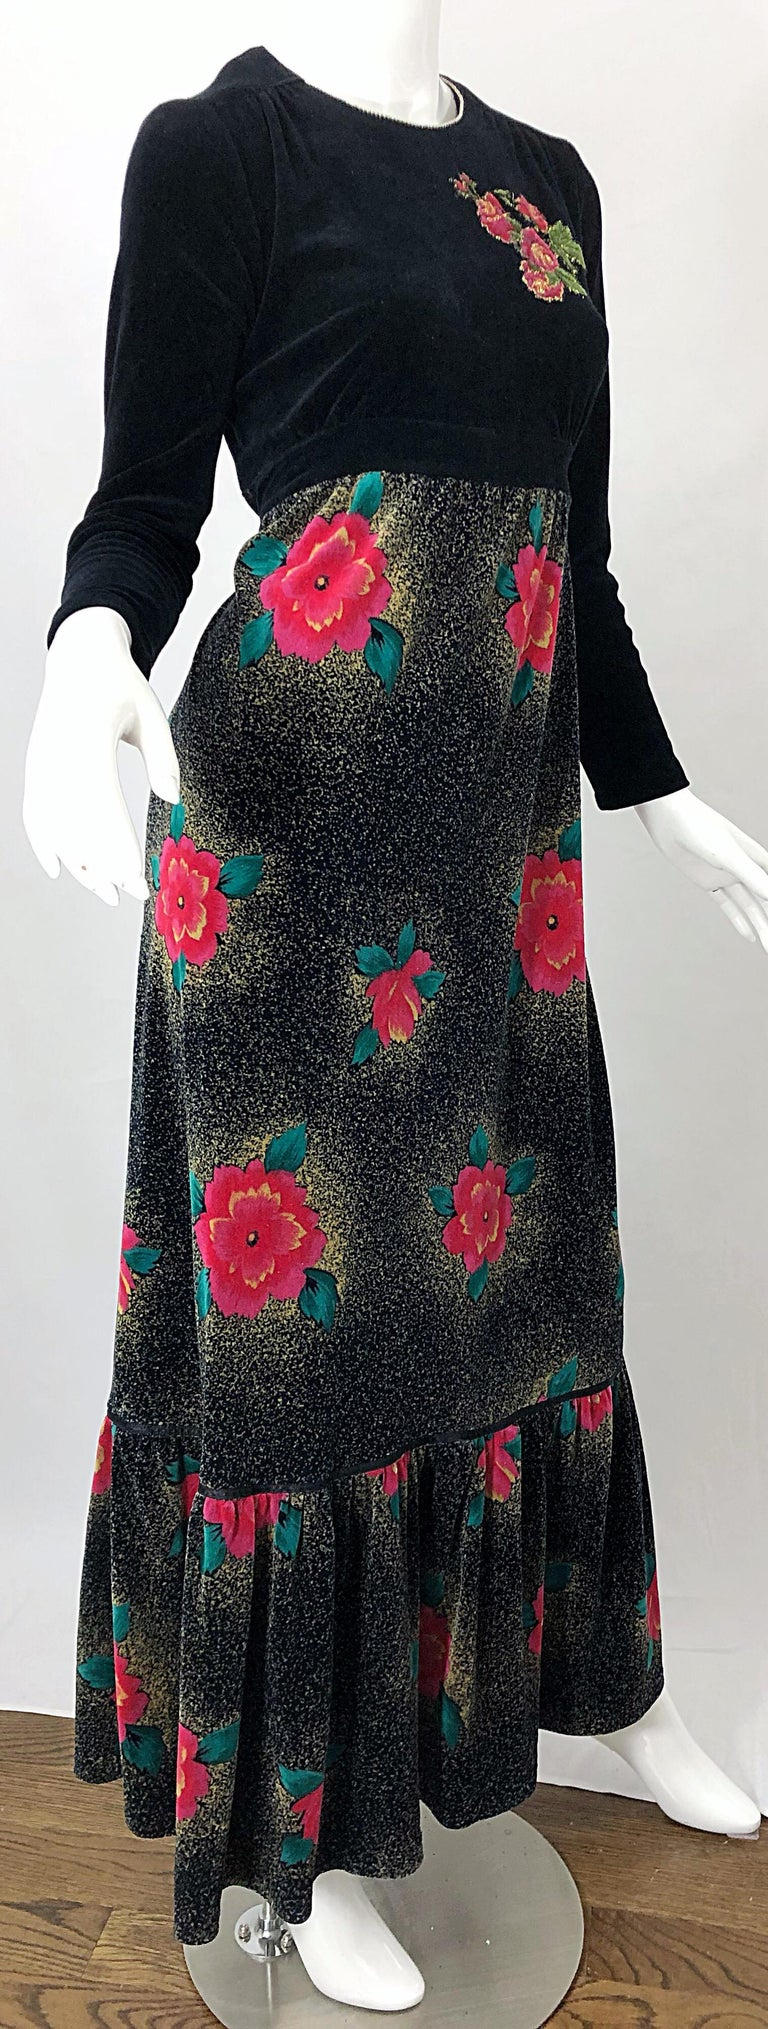 1970s Poinsettia Print Embroidered Beaded Velvet Velour Holiday Maxi Dress Gown For Sale 7